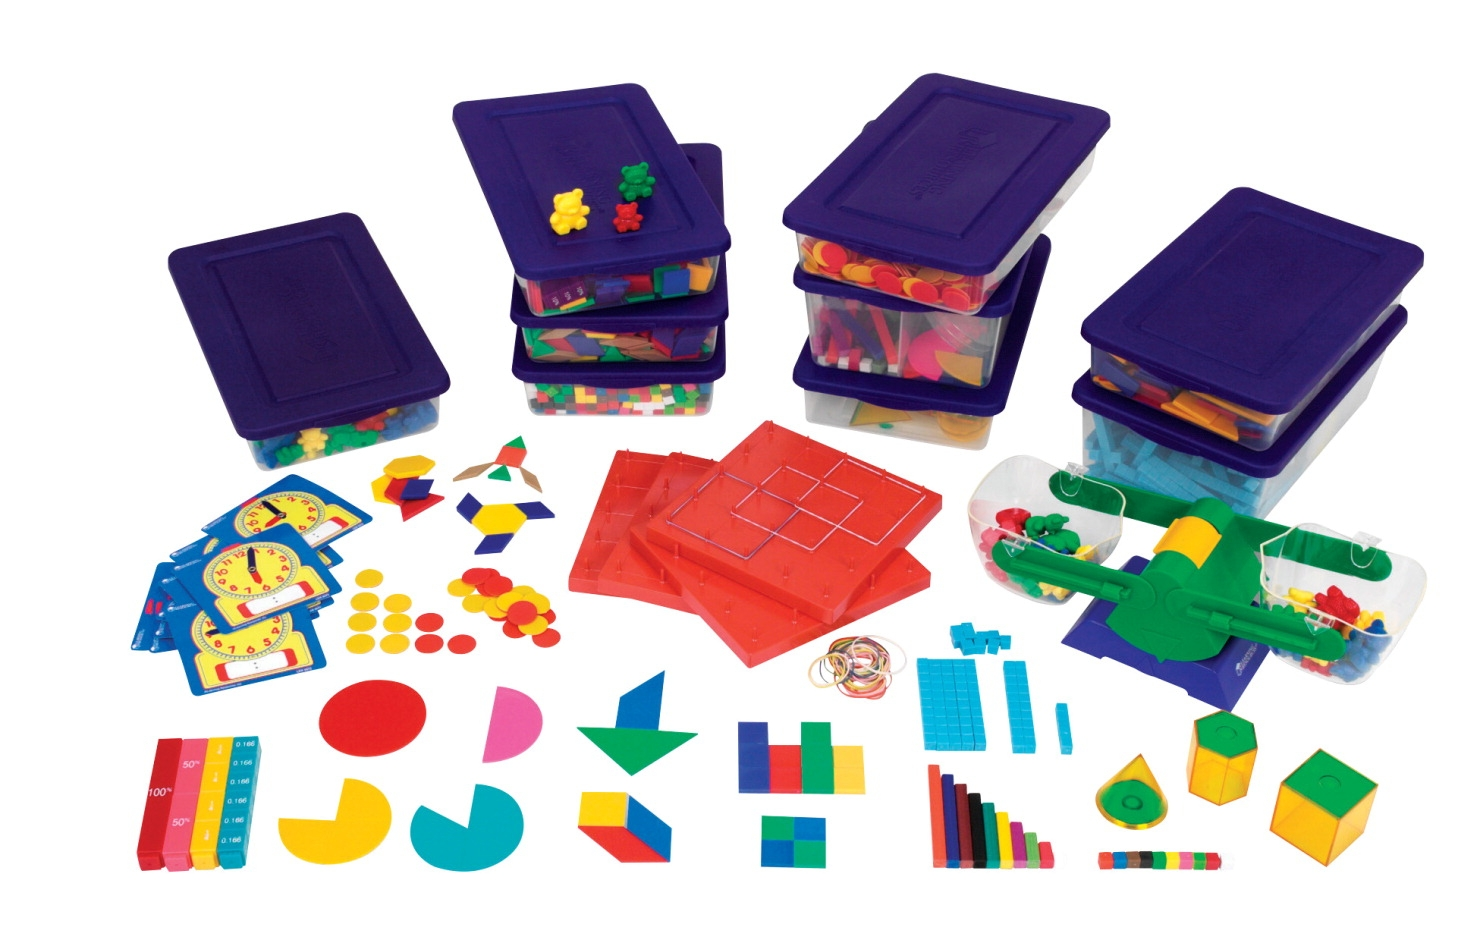 Learning Resources Manipulatives Kit Standards Handbook; Grades 3 To 4 - 087692 - Instructional Materials Resources Science Activities Equipment Physical Science Projects Books 087692